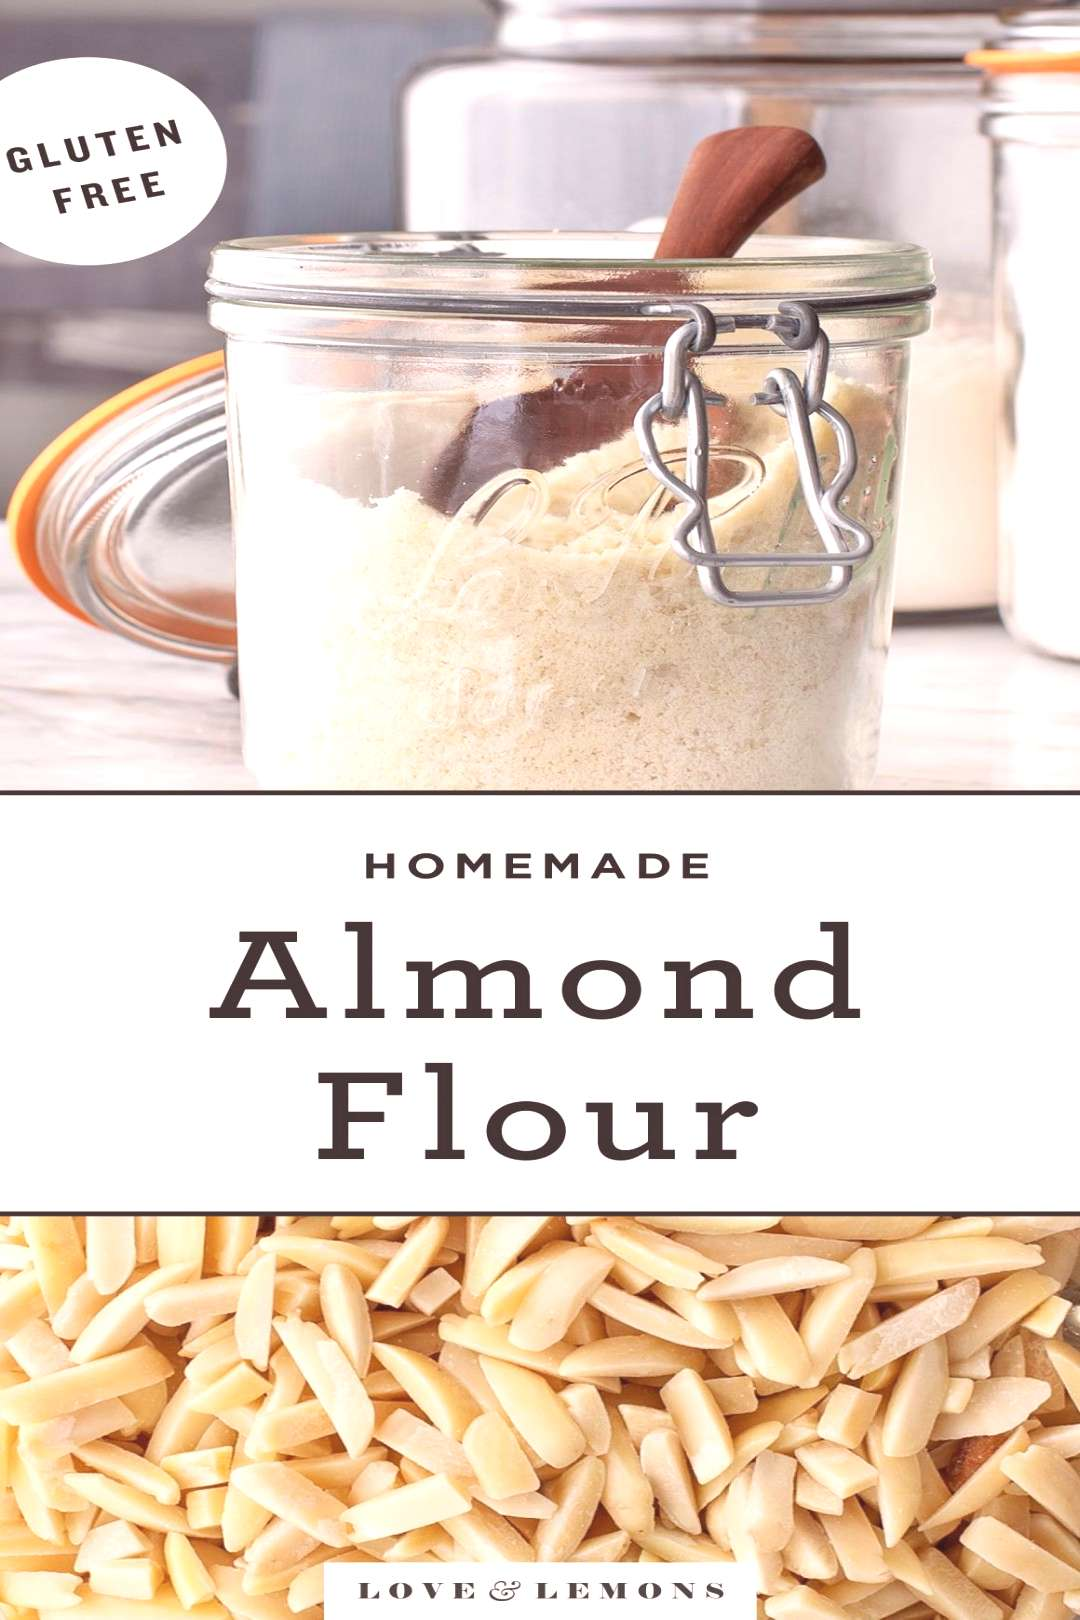 How to Make Almond Flour - Love and Lemons Learn how to make almond flour at home! It's SO easy to